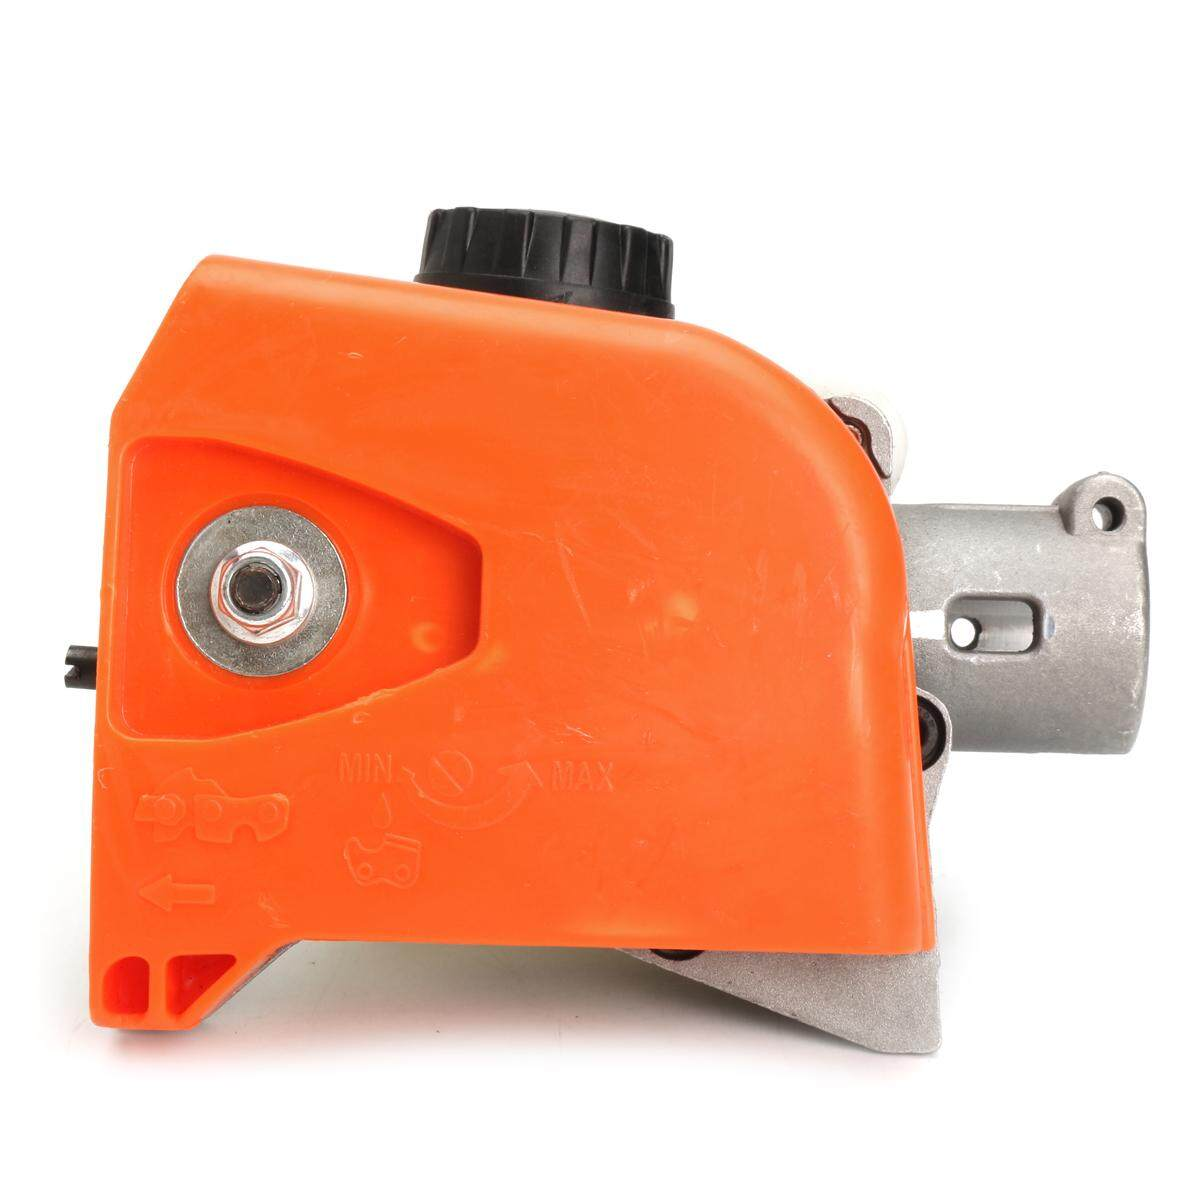 Chainsaw Gear Head Gearbox for Stihl HT KM 73-130 Series Pole Saw Trimmer